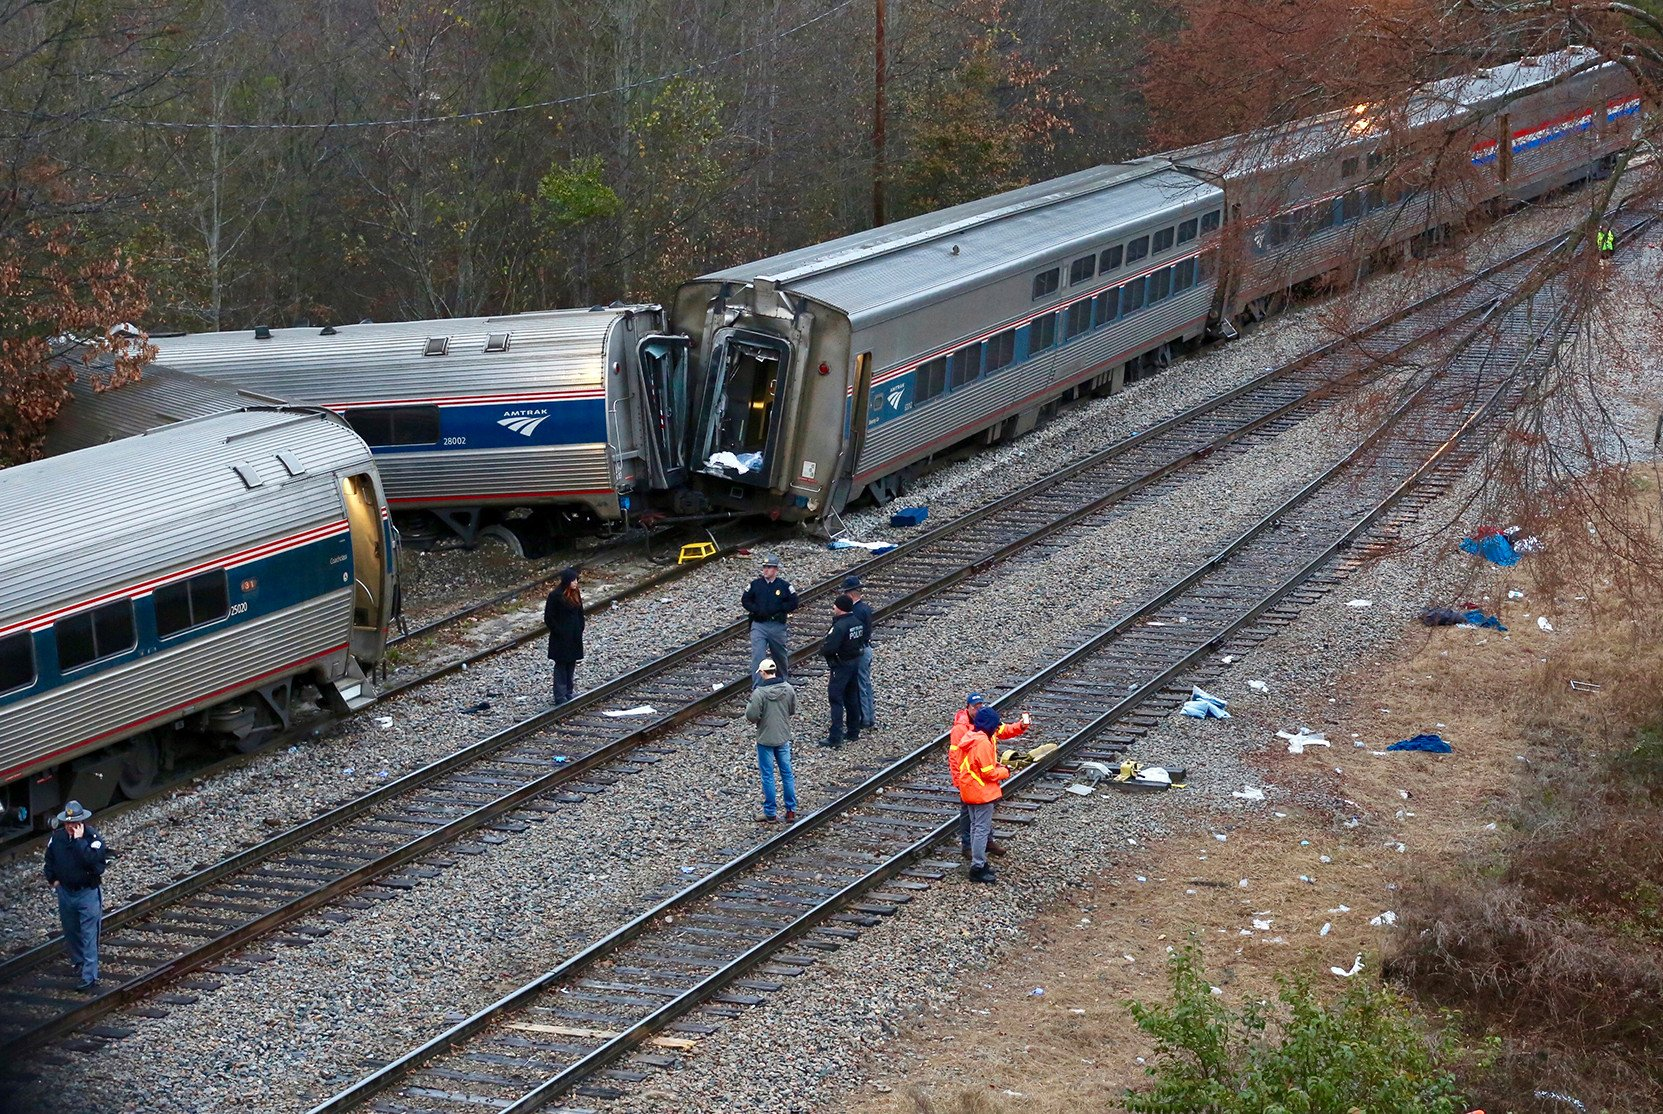 Amtrak train was traveling on wrong track before fatal crash